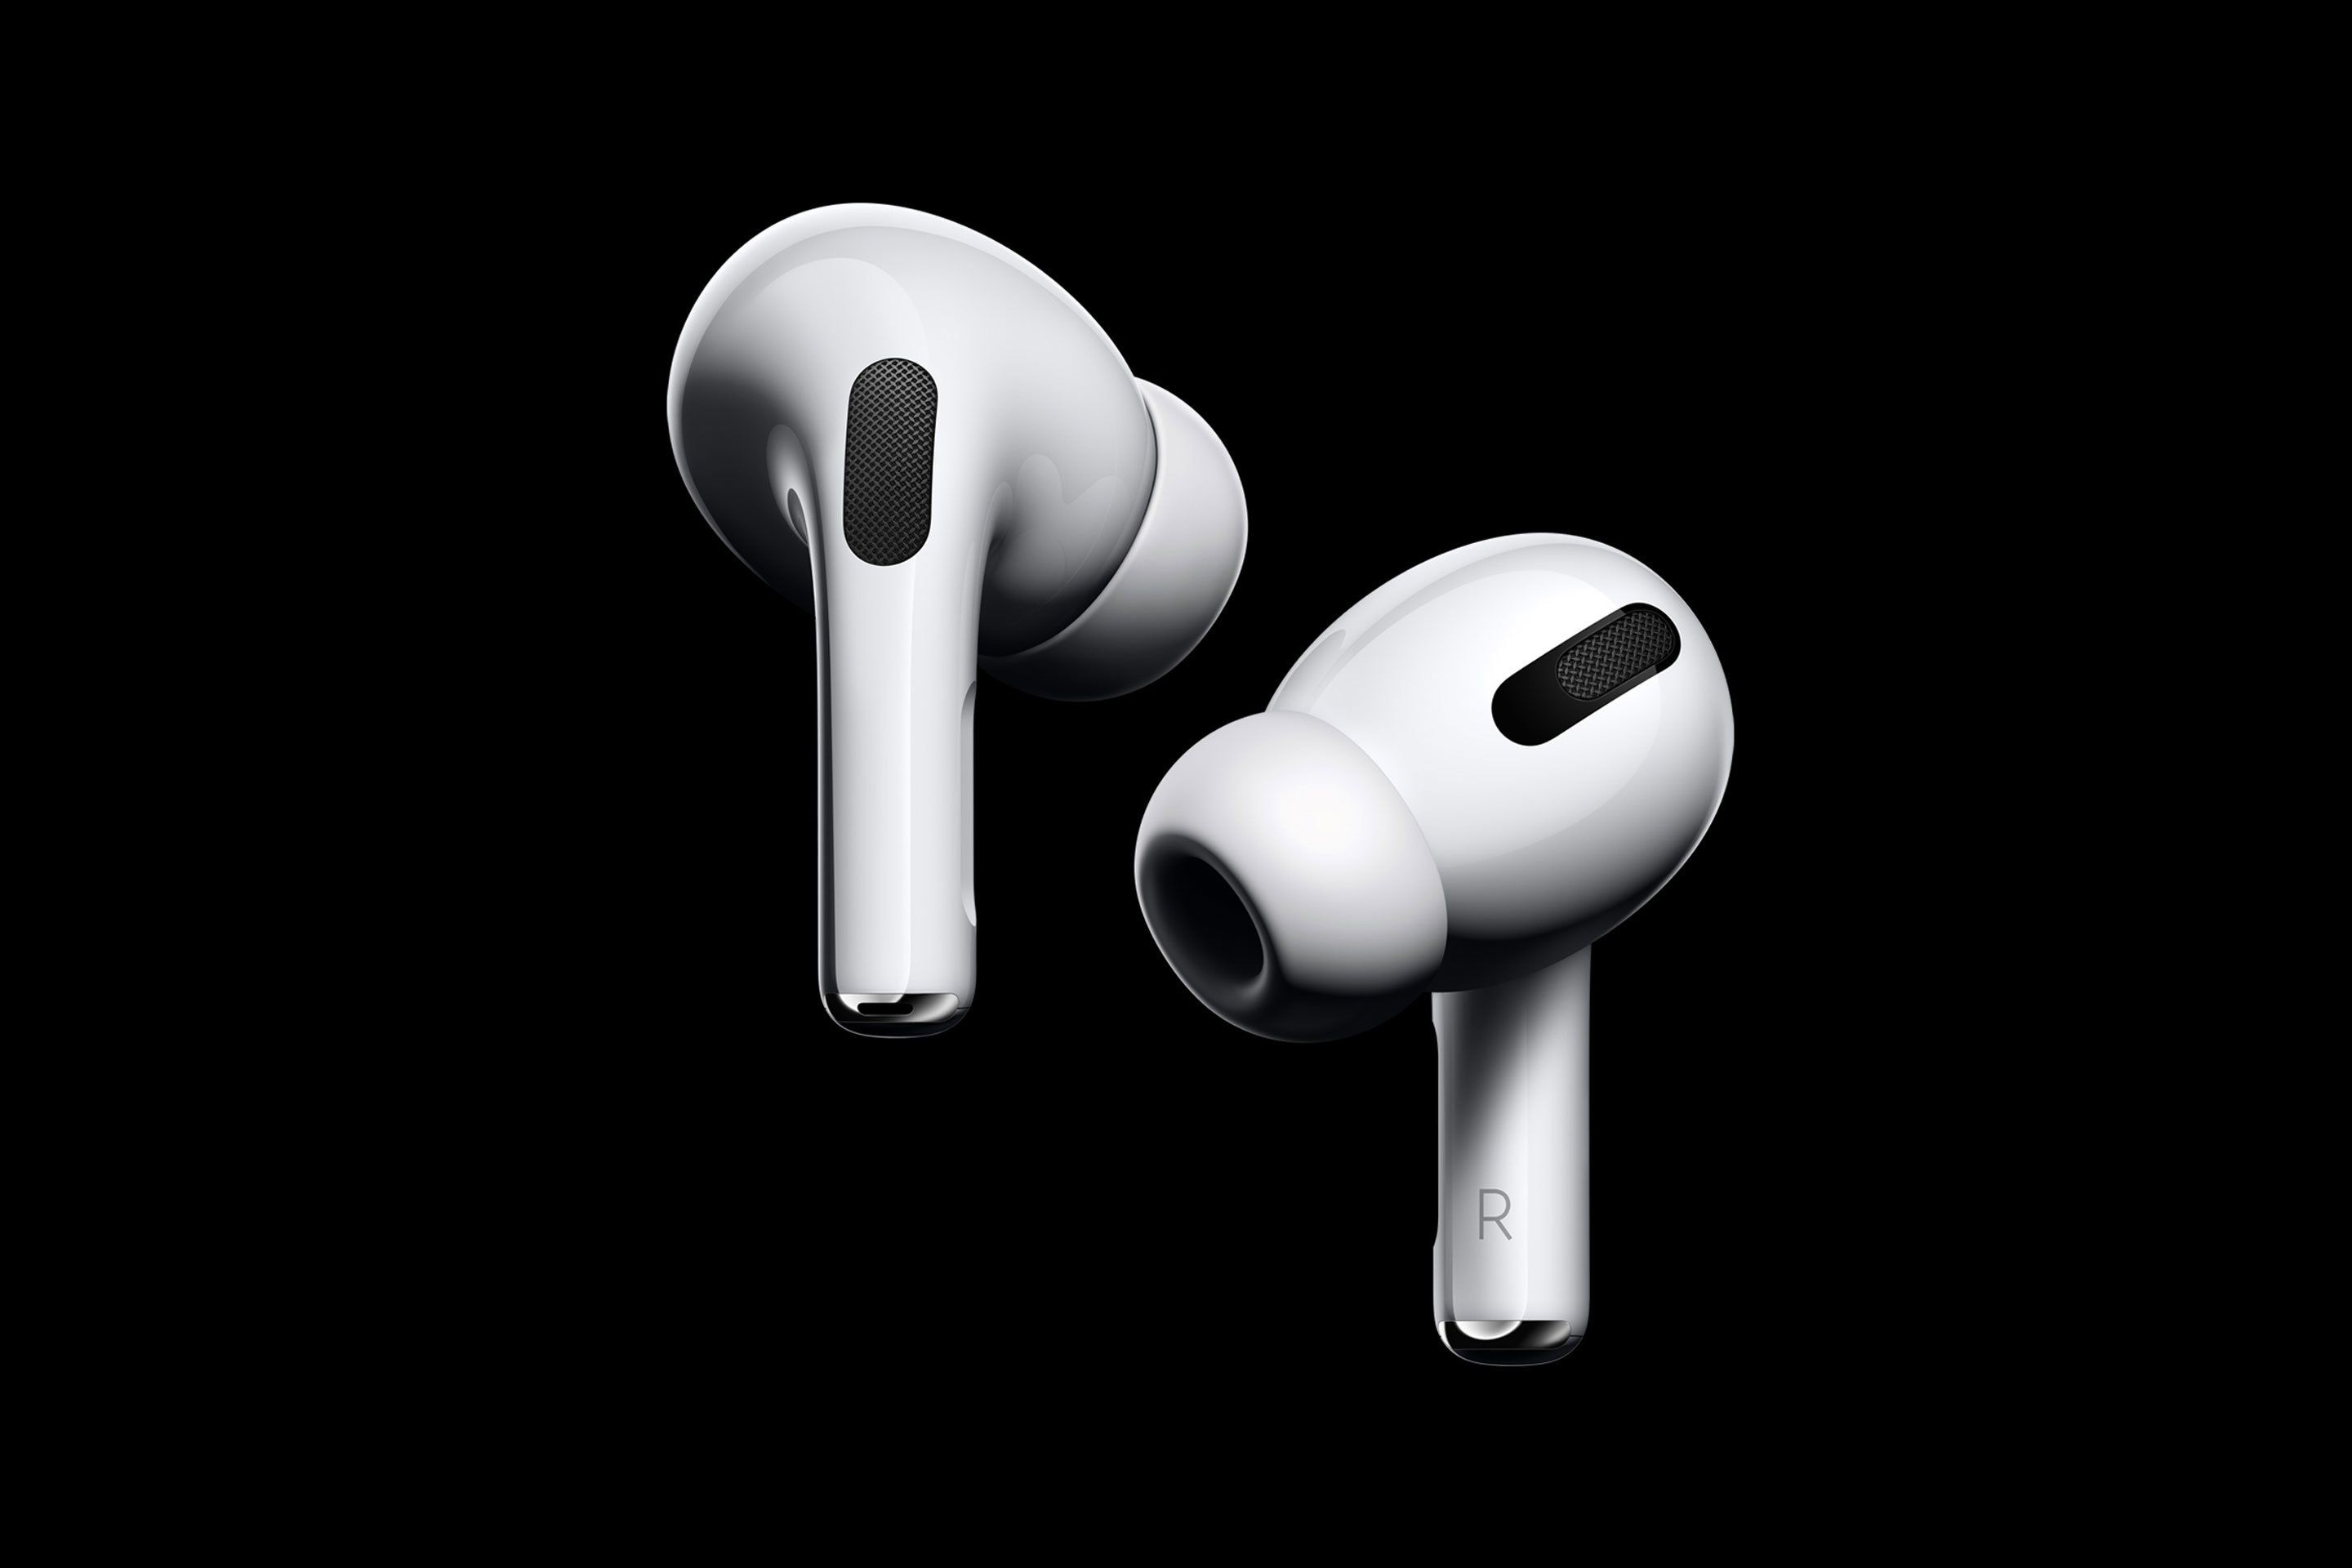 Apple Wants You To Drop 249 On The New Airpods Pro Are They Worth The Cost Airpods Pro Noise Cancelling Wireless Earbuds